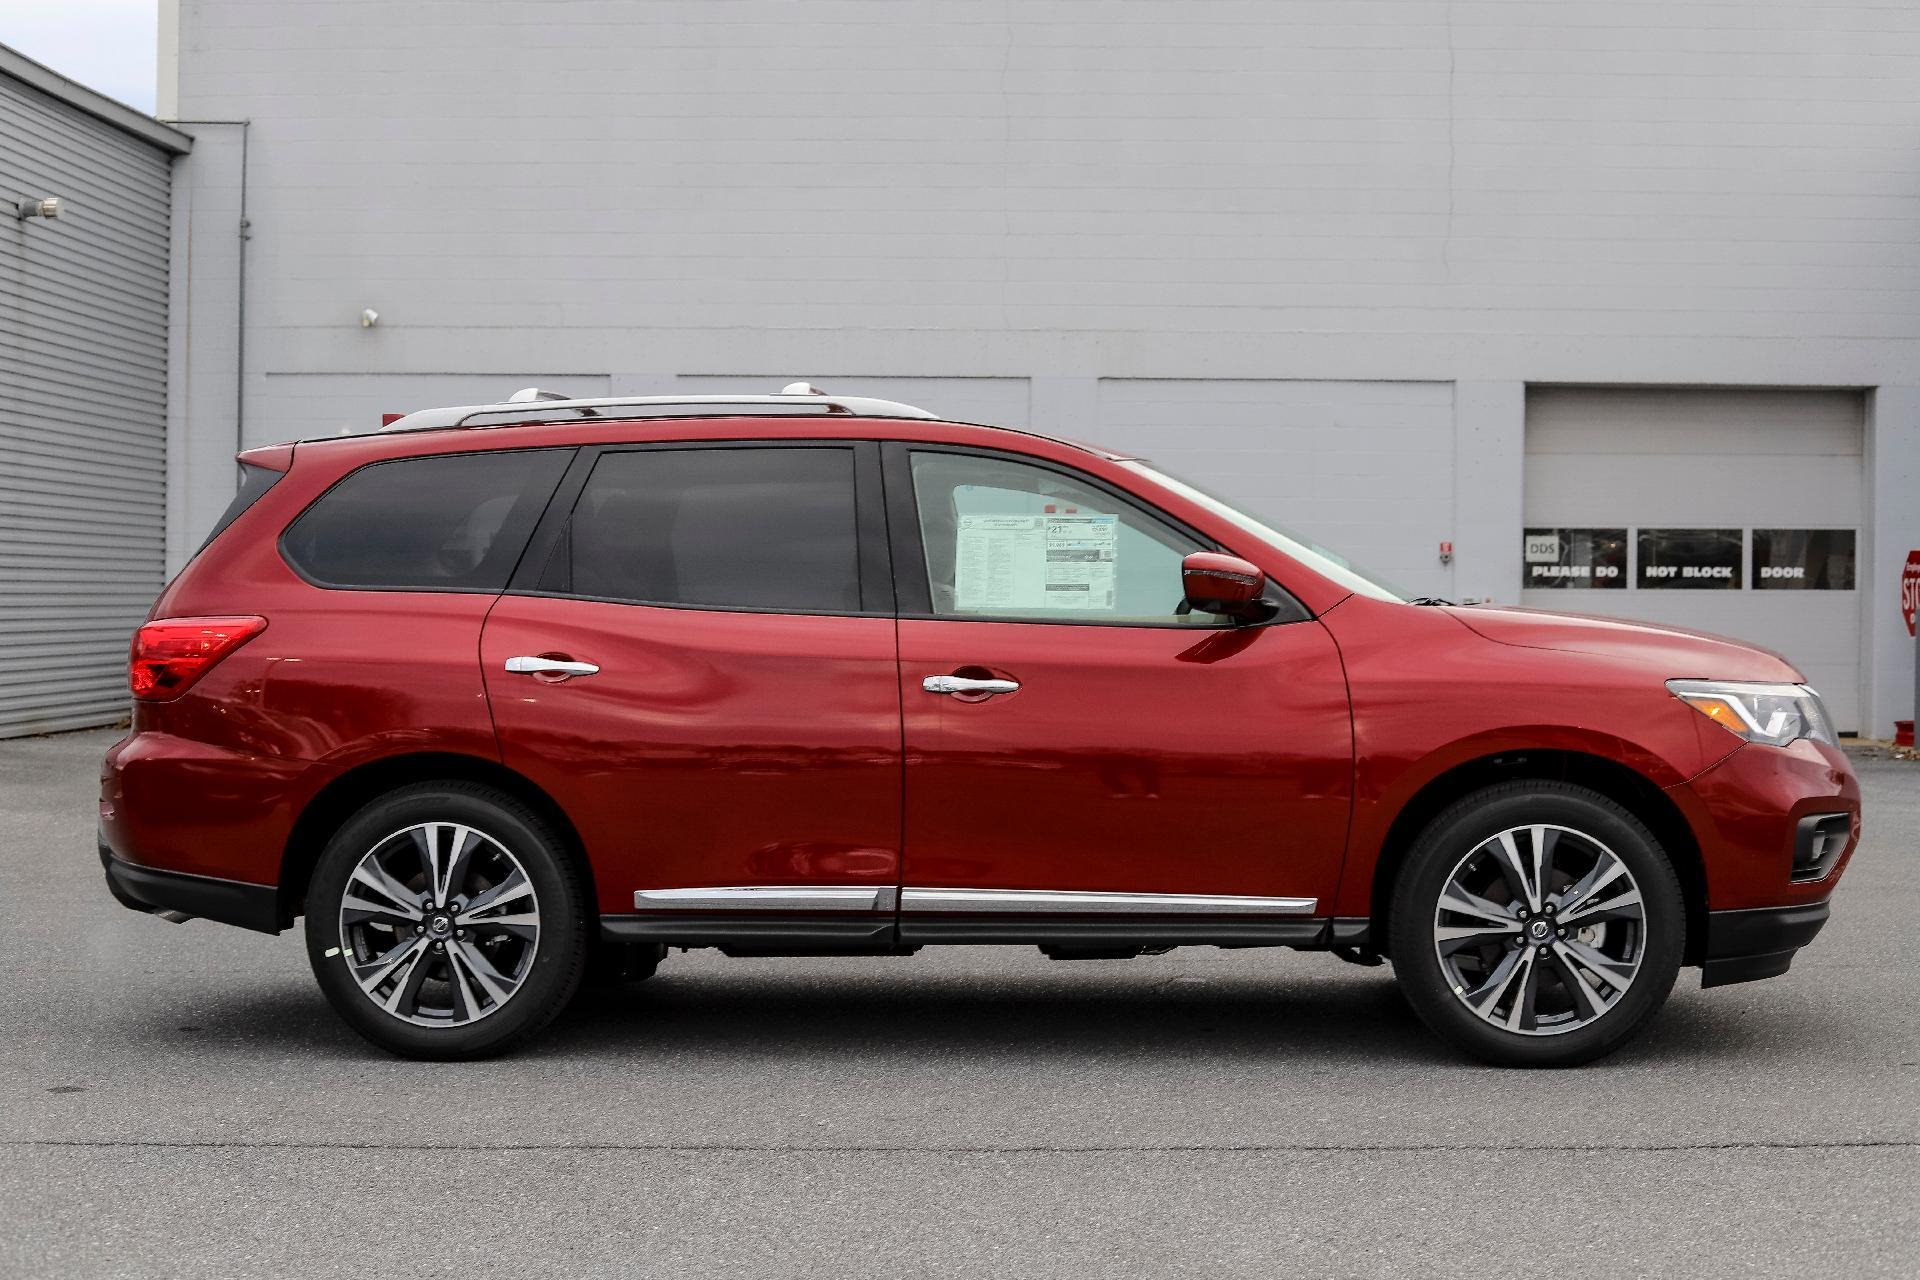 New 2019 Nissan Pathfinder S for sale $33,220 at M and V Leasing in Brooklyn NY 11223 1